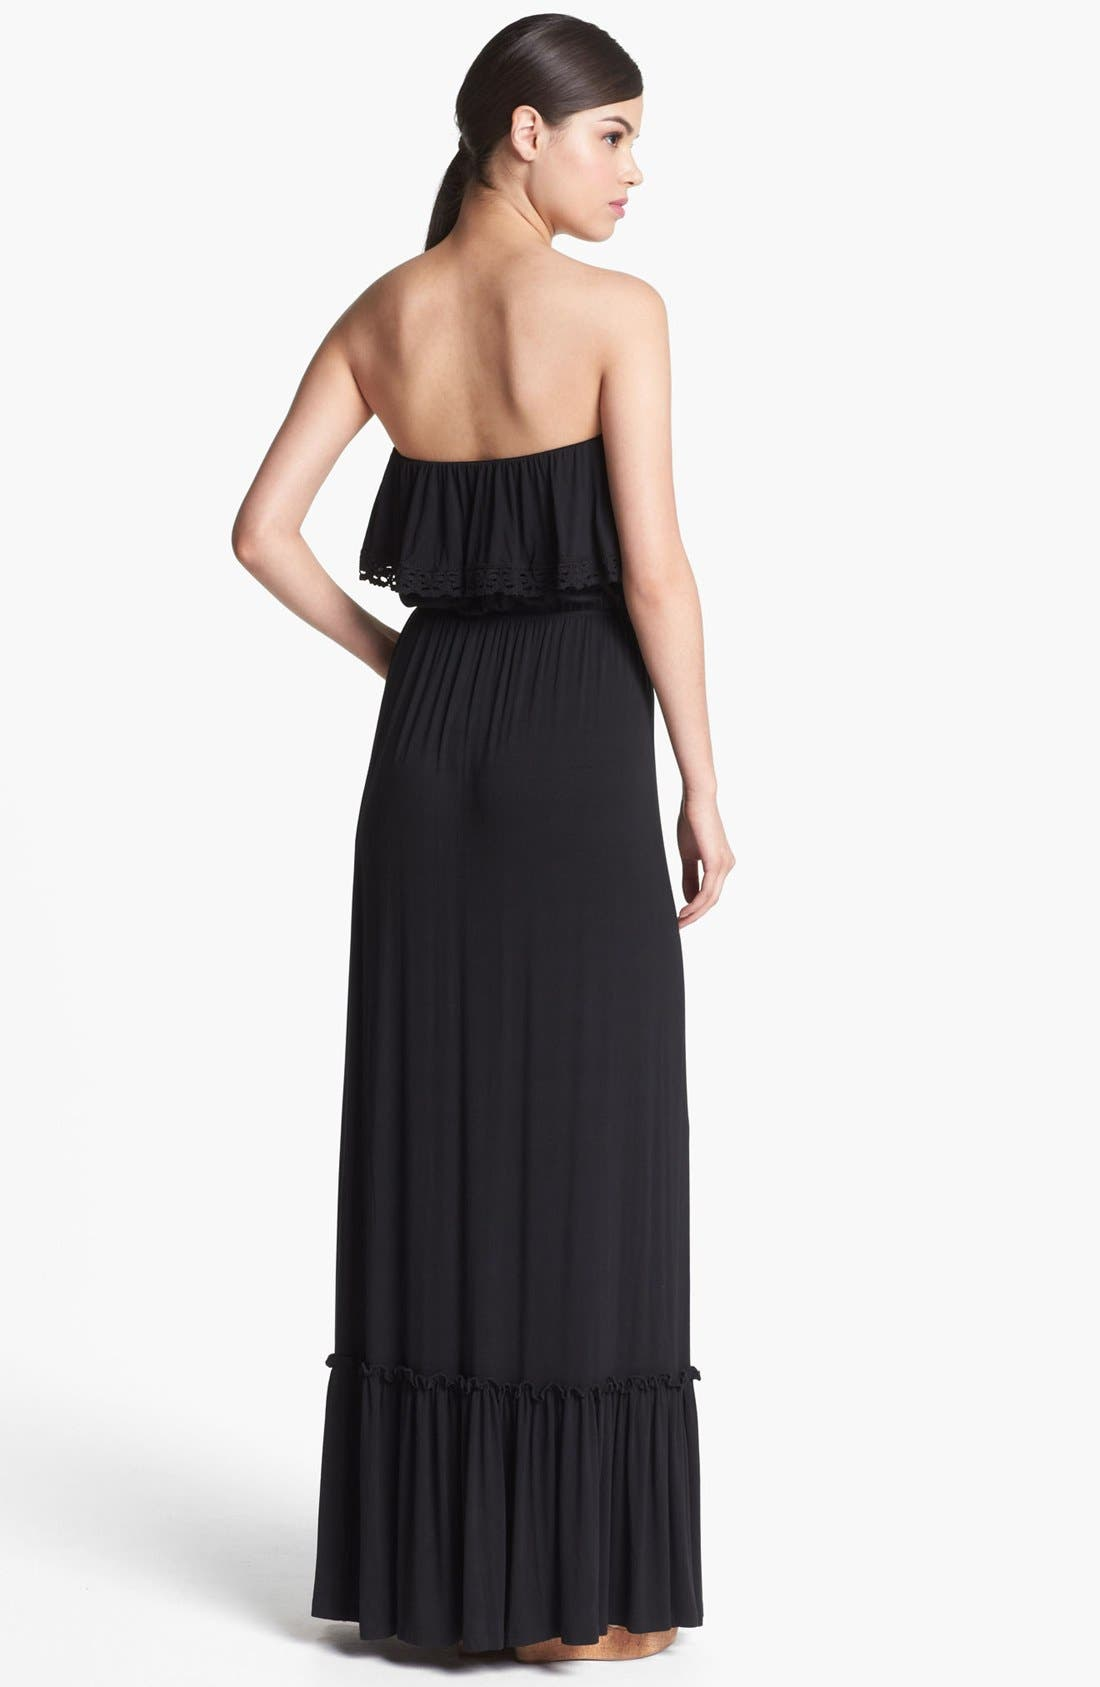 Ruffled Strapless Maxi Dress,                             Alternate thumbnail 3, color,                             001